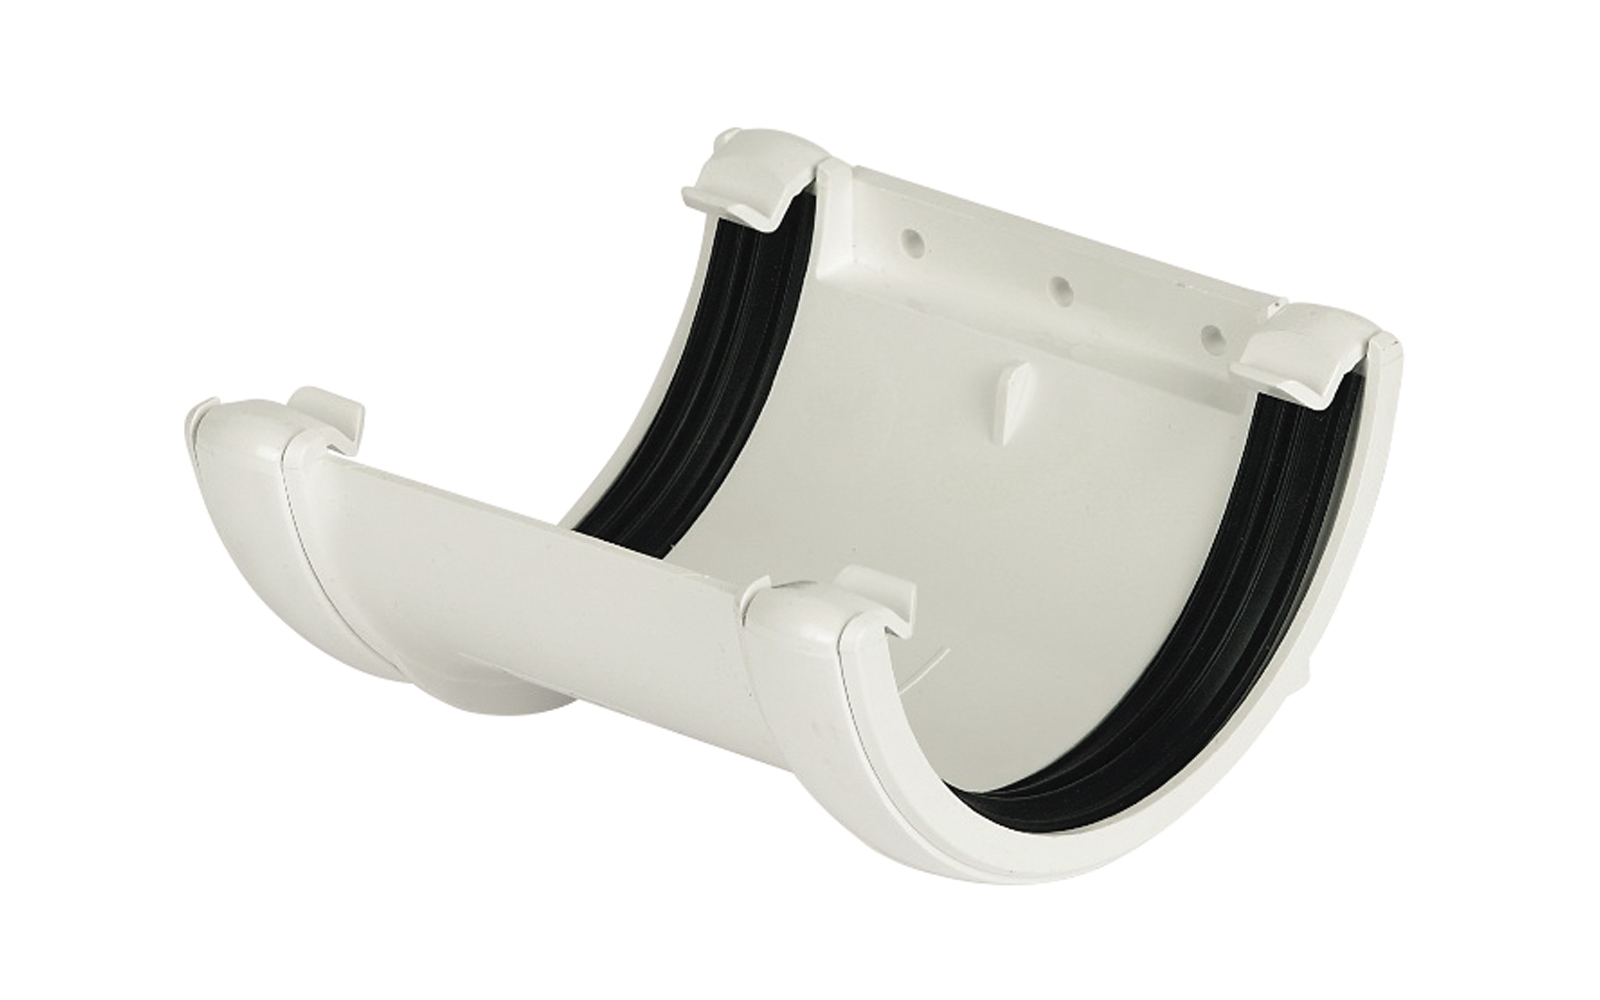 Floplast RU1WH 112mm Half Round Gutter - Union Bracket - White